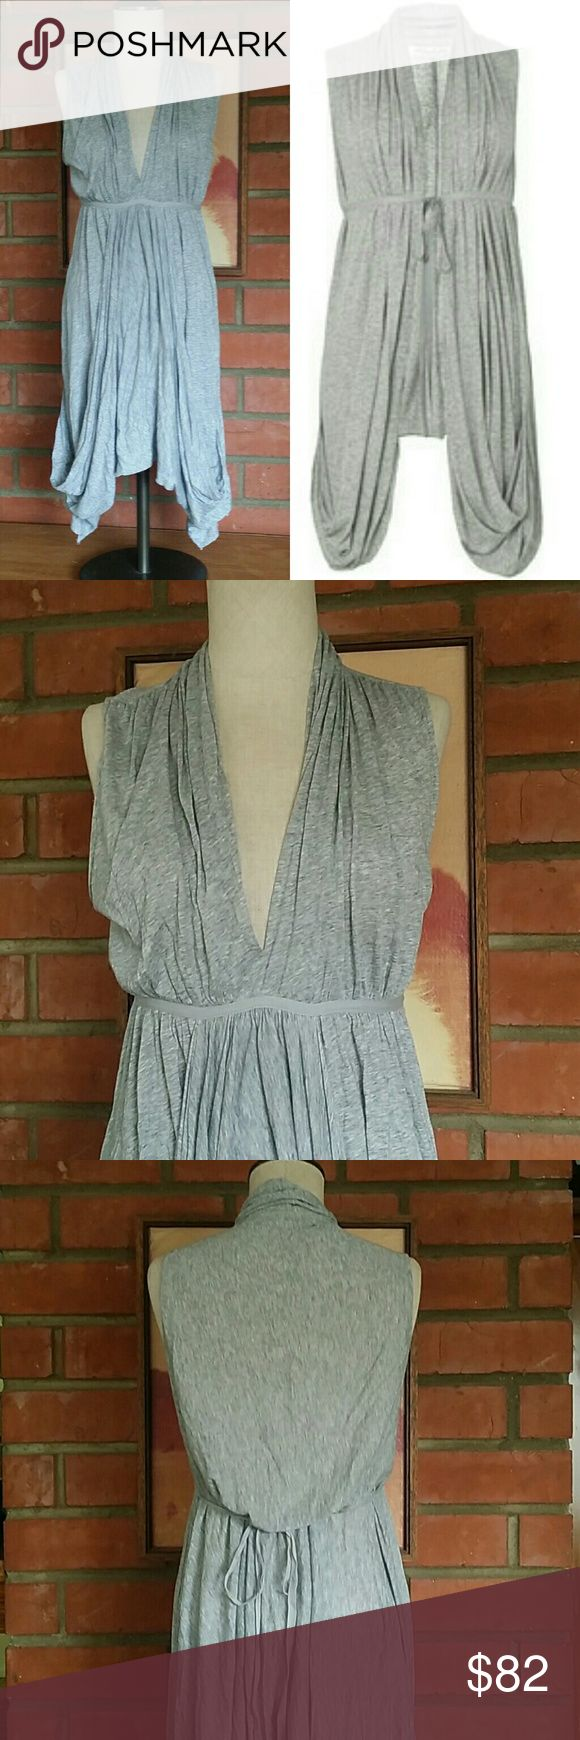 All Saints Spitalfields Salacia Dress Size 10 (runs a tiny bit small do it would fit more of an 8 ) Heather grey color Empire waist ties in the back Euc very gently worn with no issues of any kind. All Saints Dresses